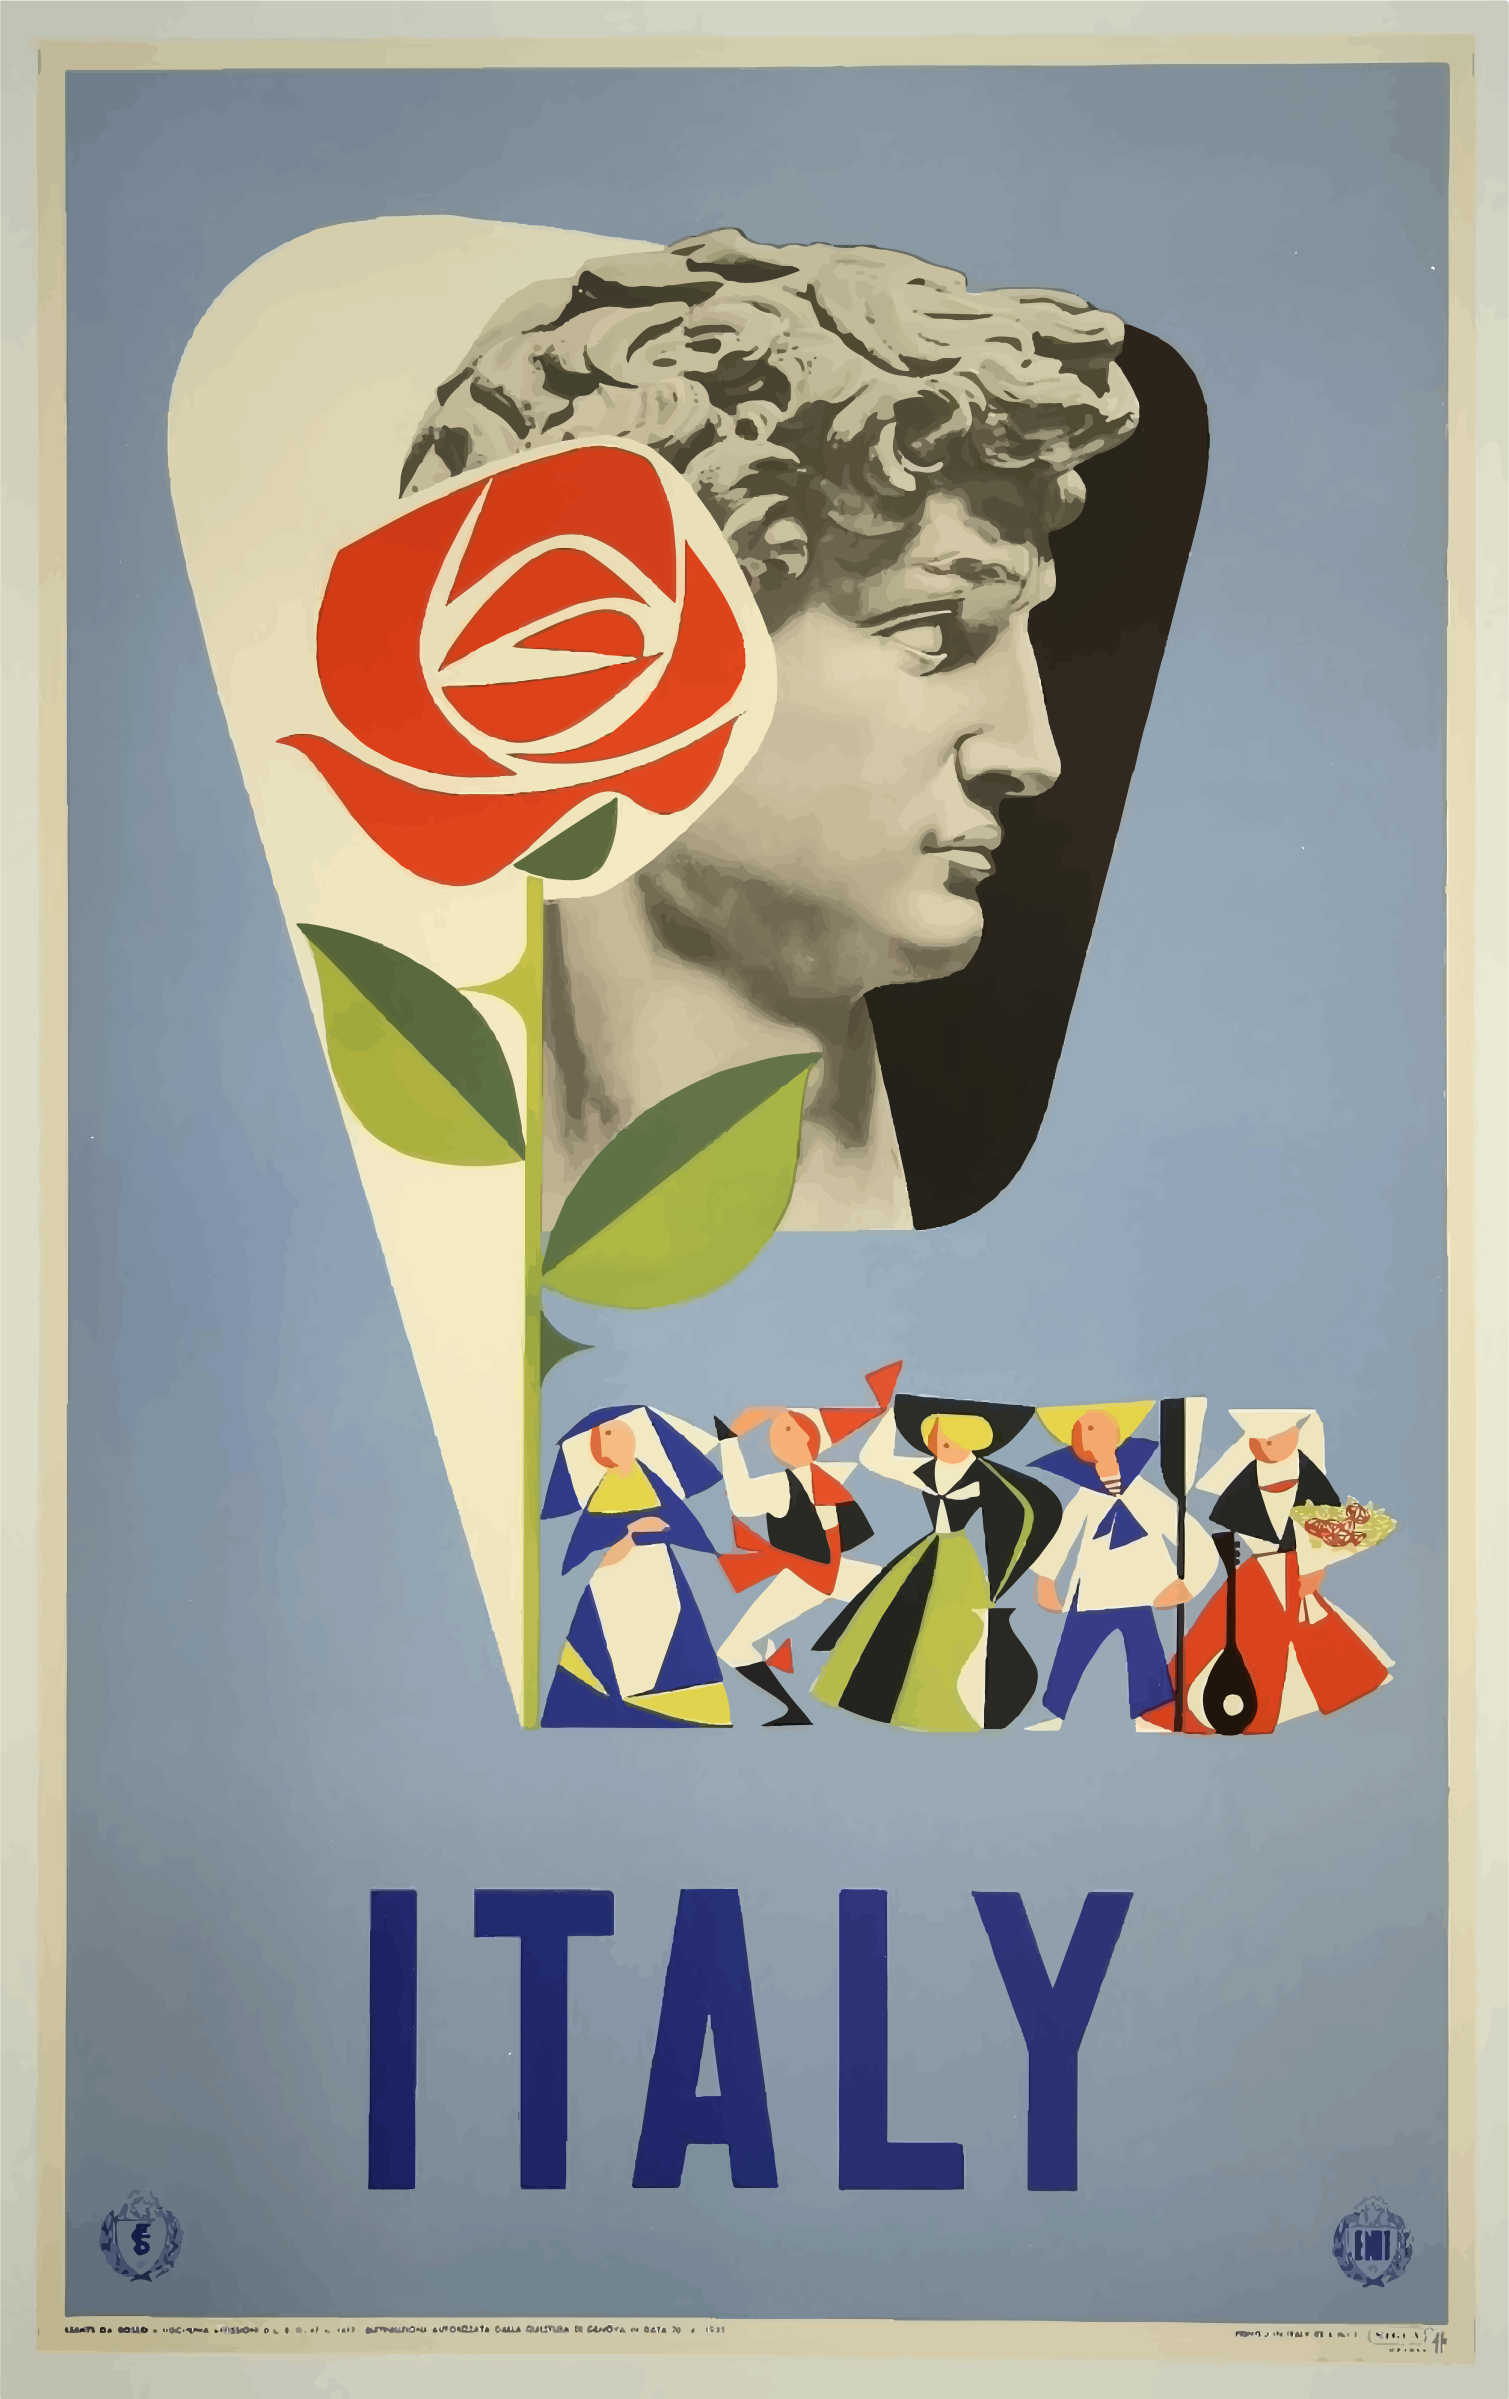 Vintage Travel Poster Italy 5 by GDJ